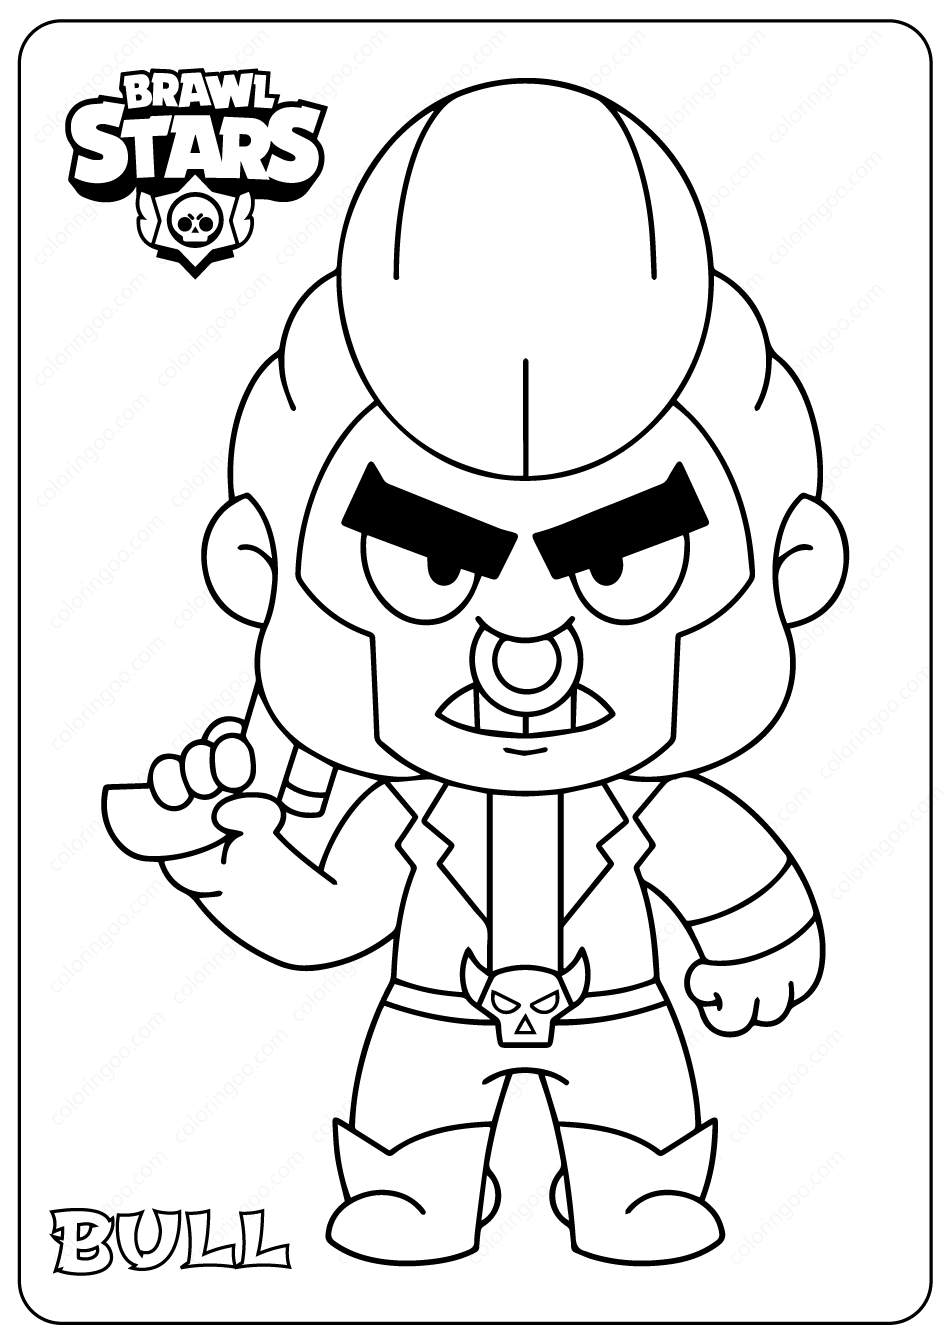 Printable Brawl Stars (Bull) PDF Coloring Pages in 2020